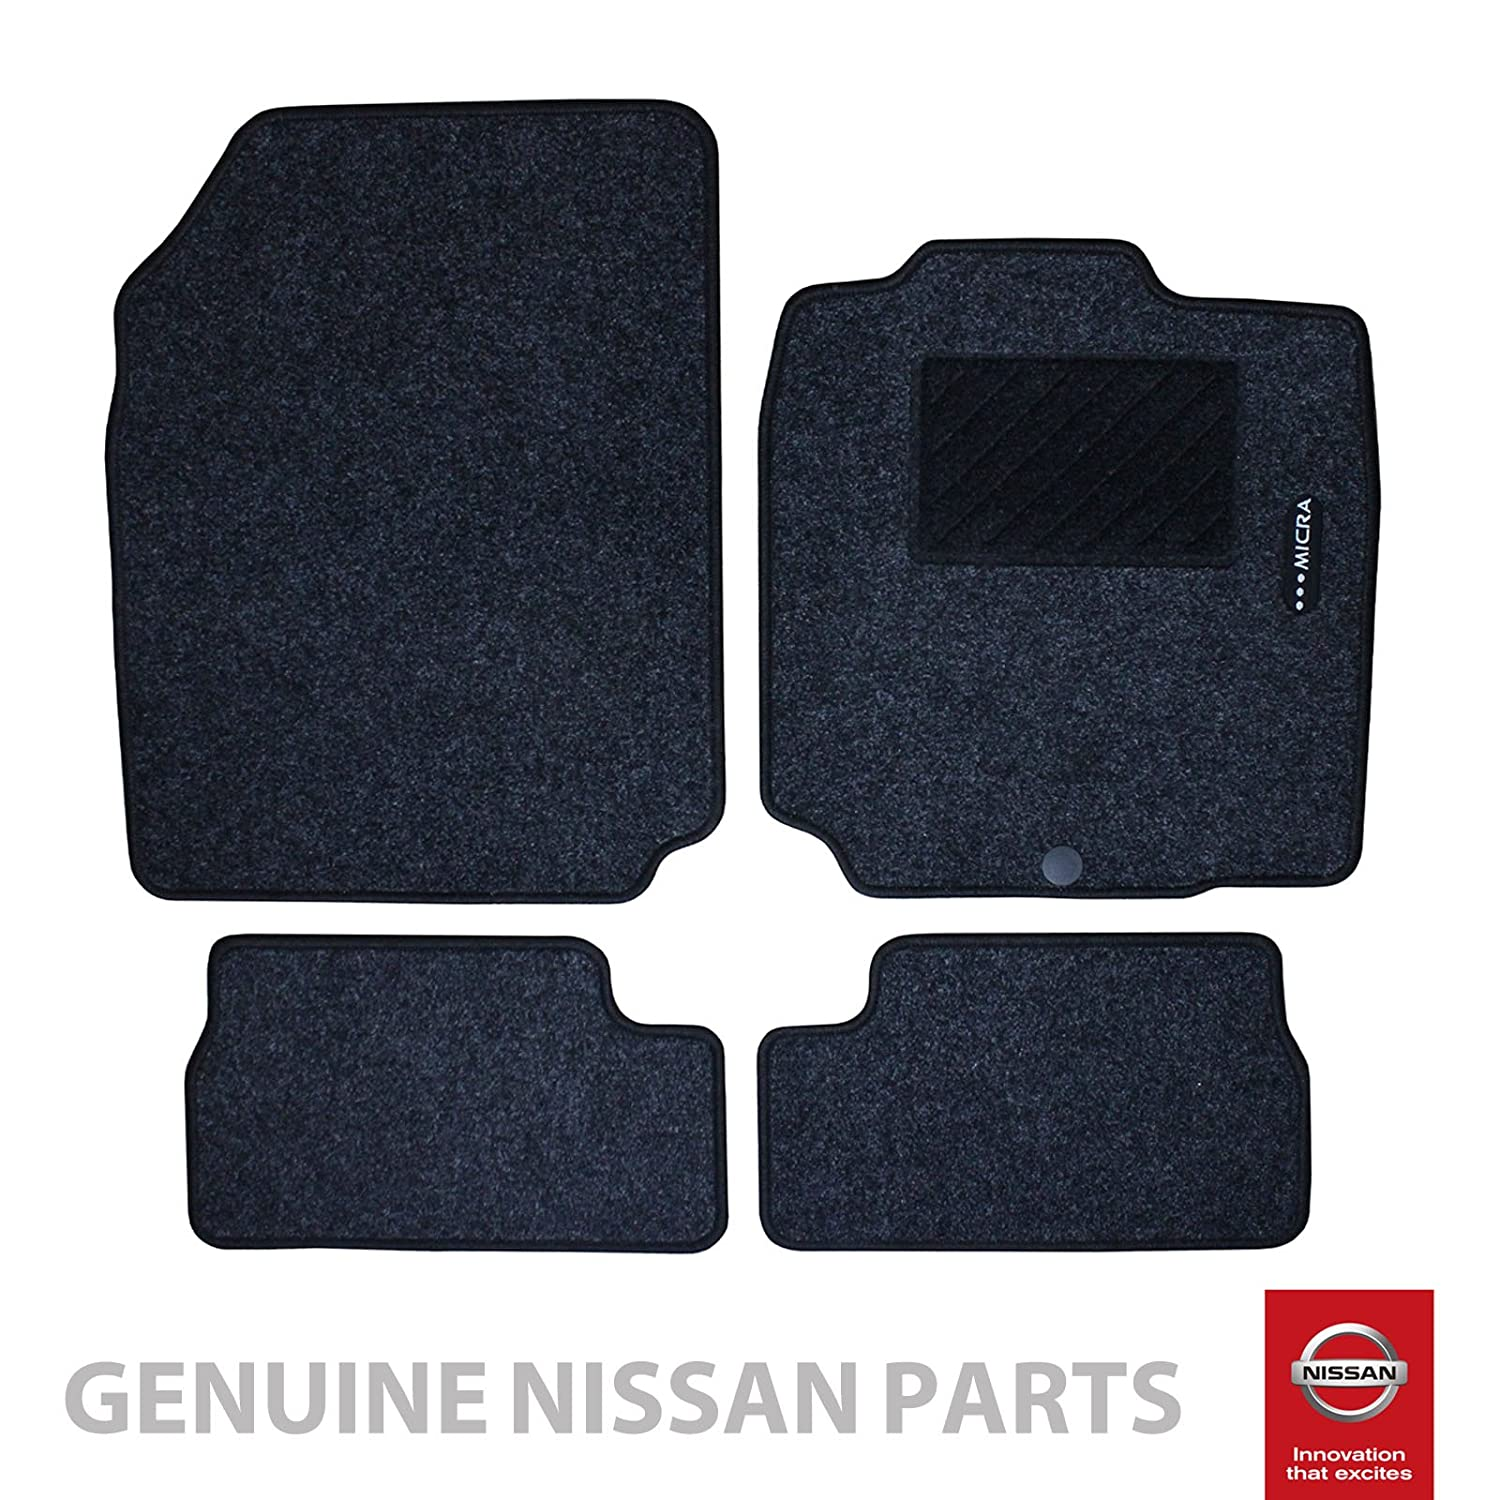 New Genuine NISSAN MICRA 2002-2010 (K12) Carpet Floor mats x4 (Front & Rear)